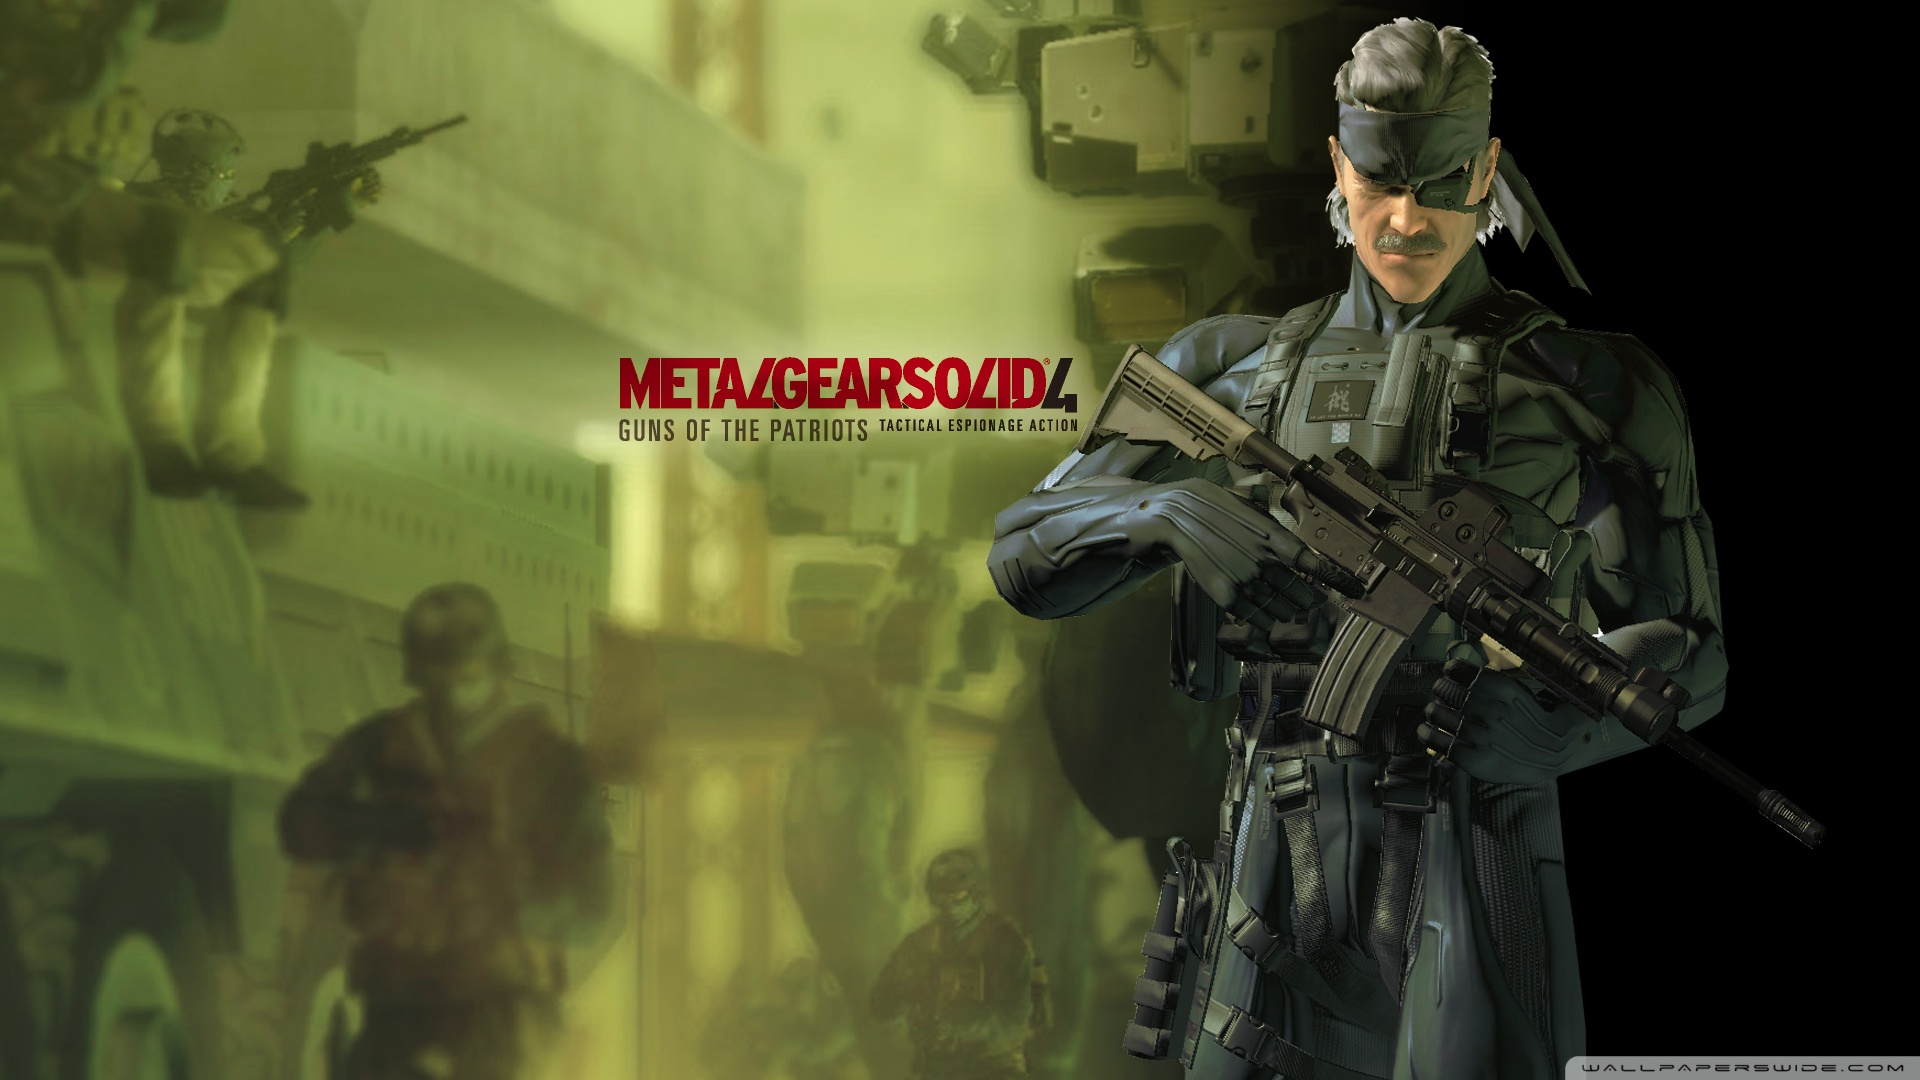 Metal Gear Solid 4 Wallpapers Metal Gear Solid 4 Wallpaper 1080p